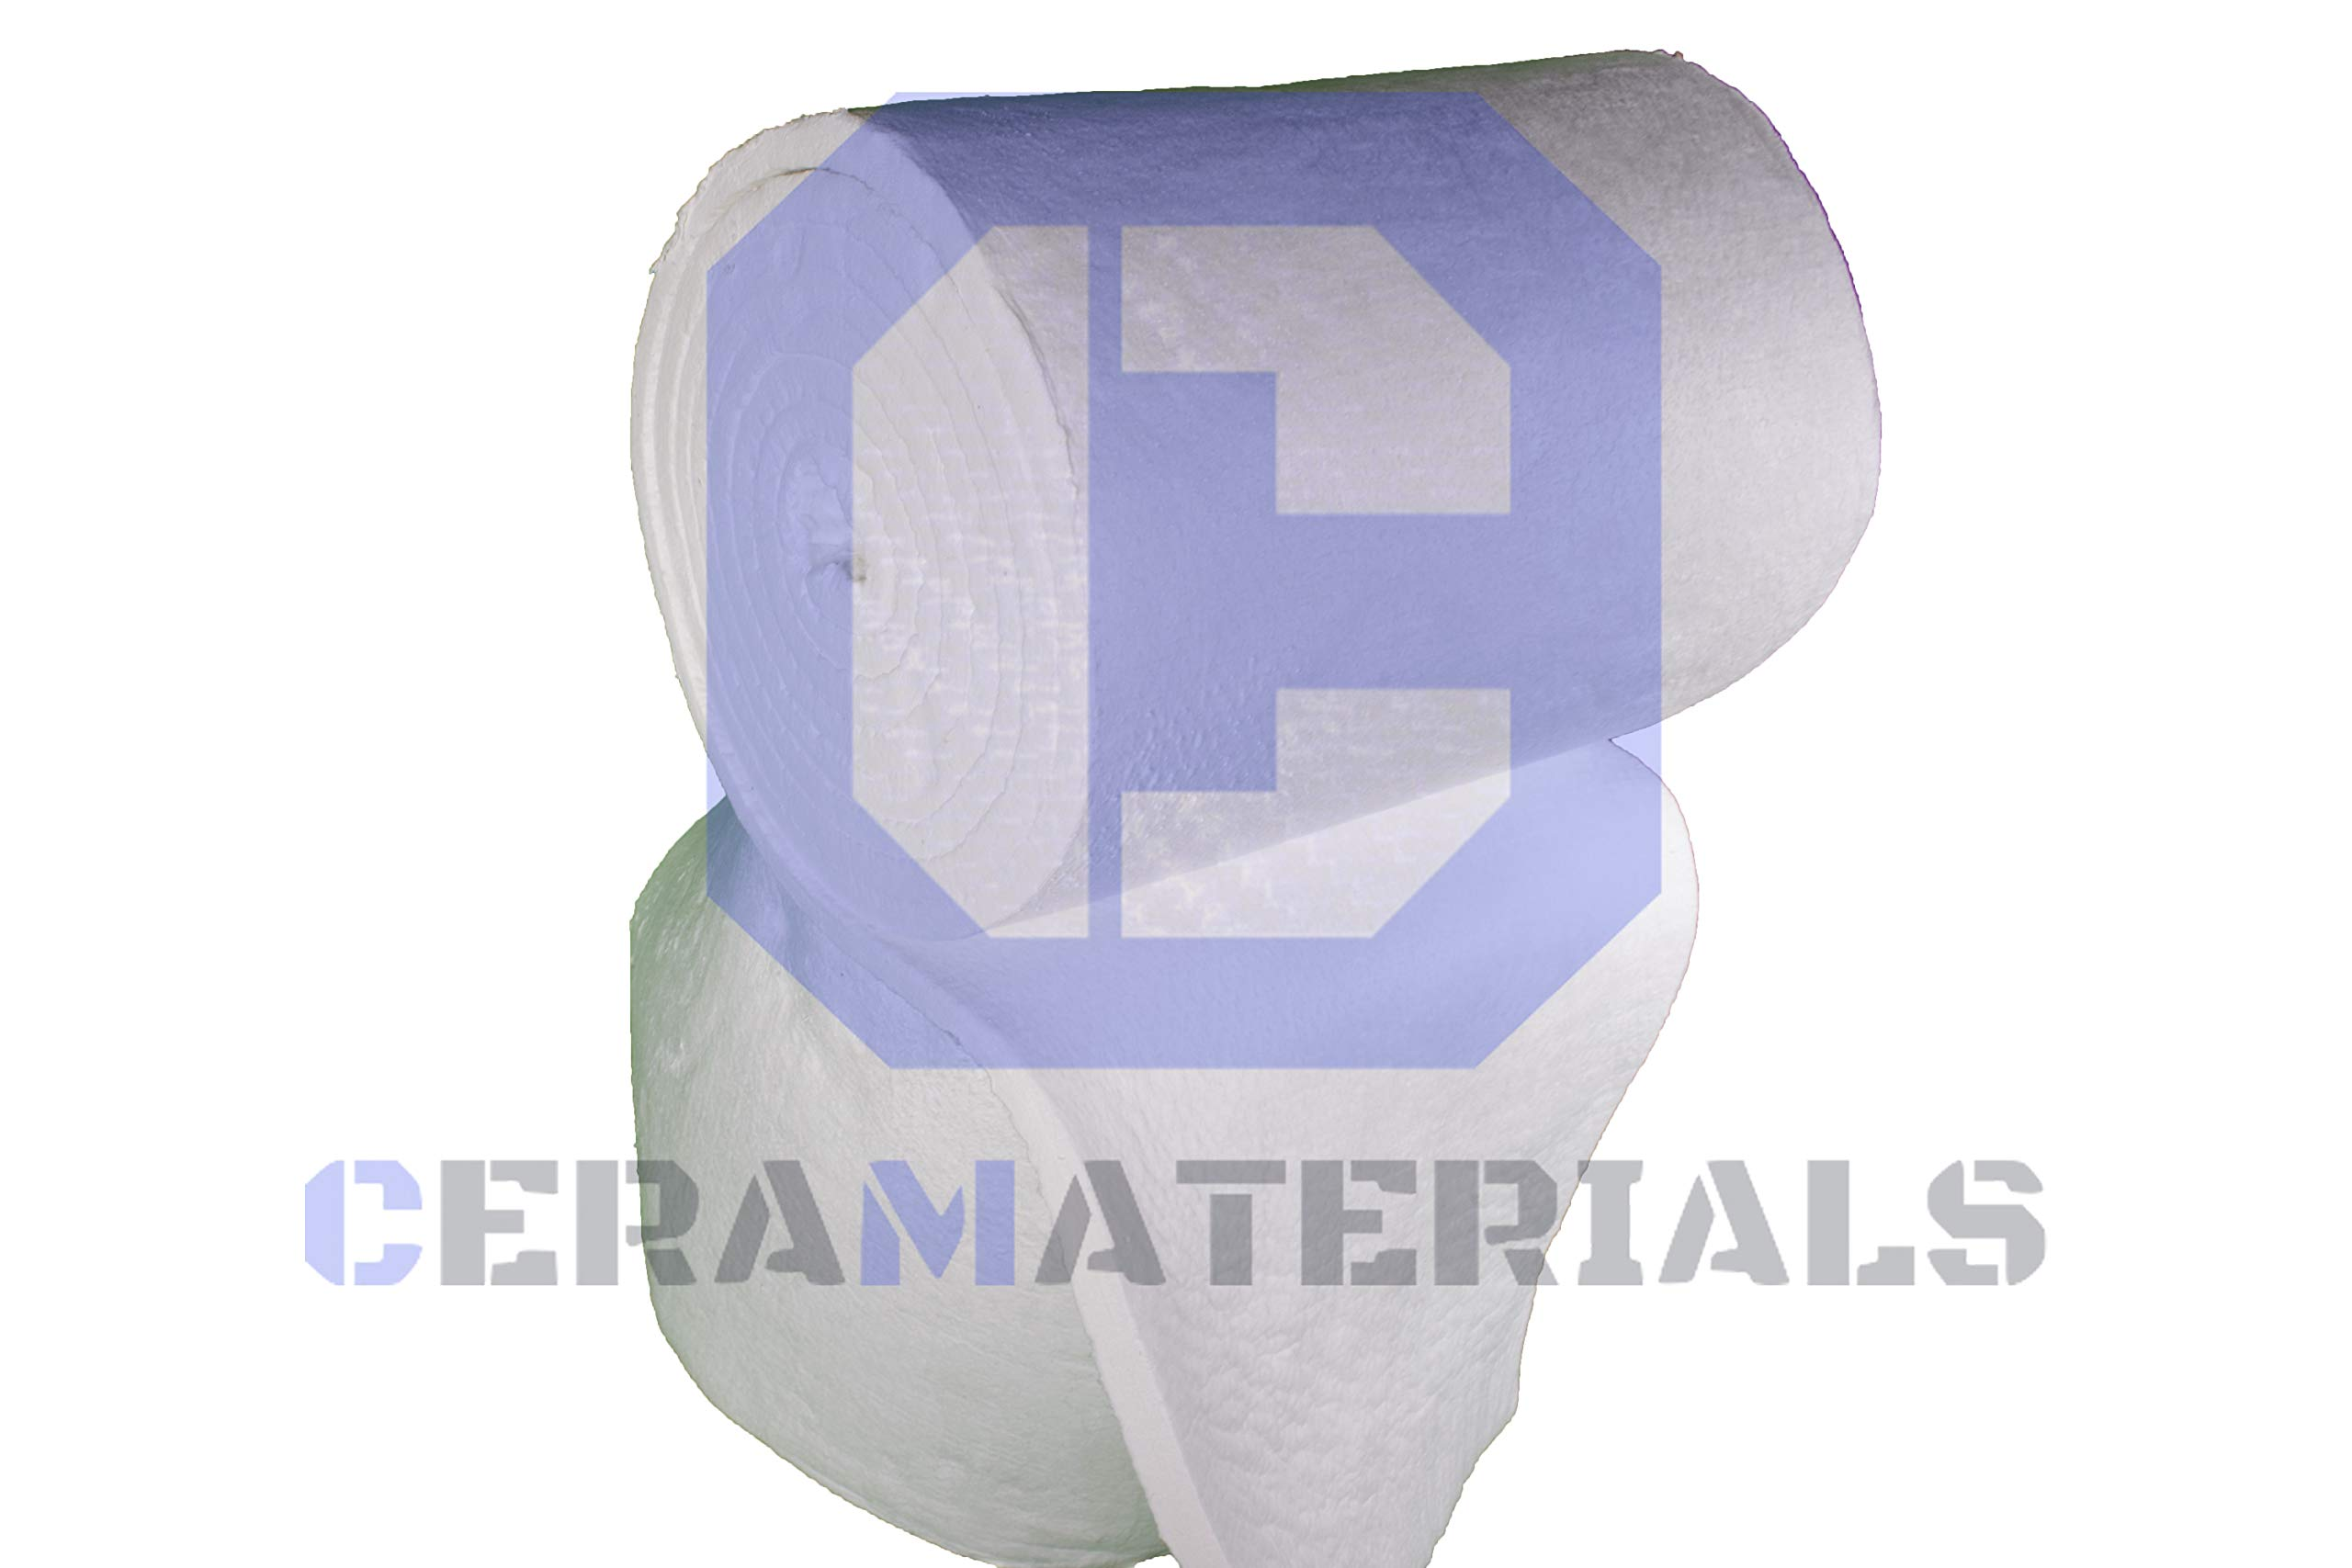 Ceramic Fiber Insulation Blanket 8# Density 2600F (1''x24''x25') for Thermal Insulation of Stoves,Pizza Ovens, Furnaces, Kilns by CeraMaterials